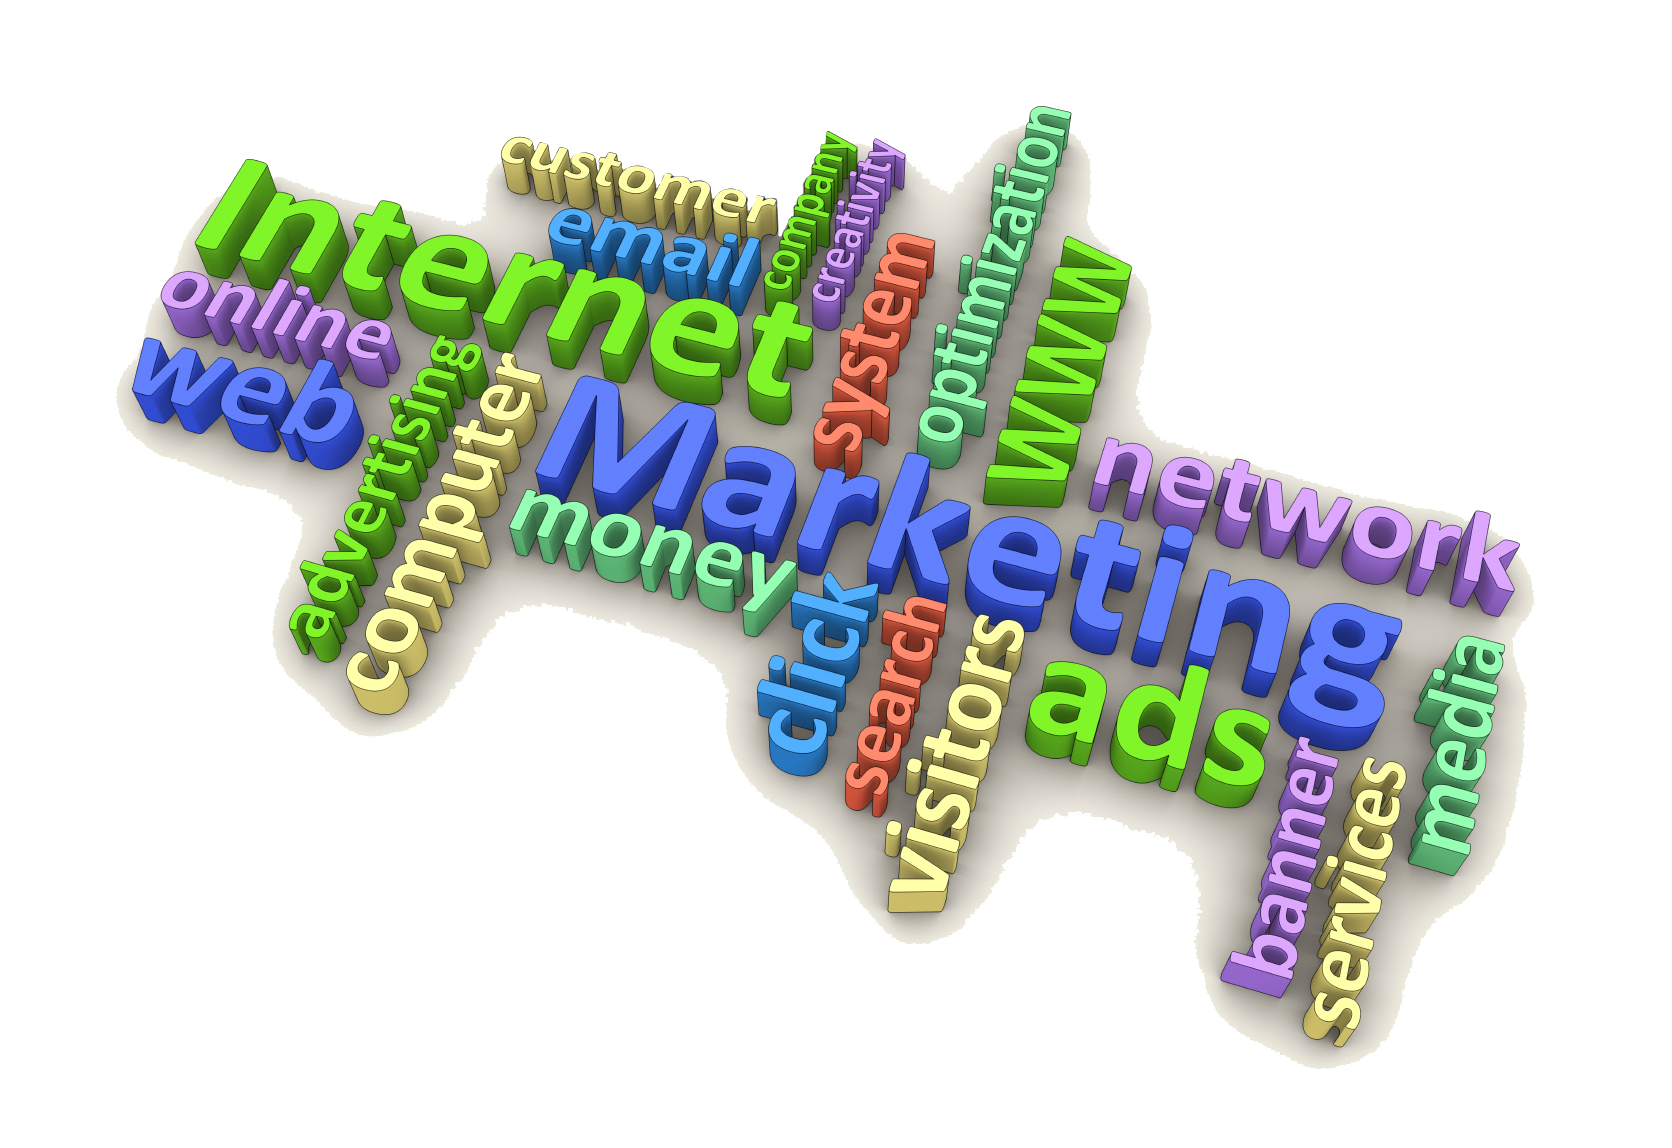 Internet marketing collage of words